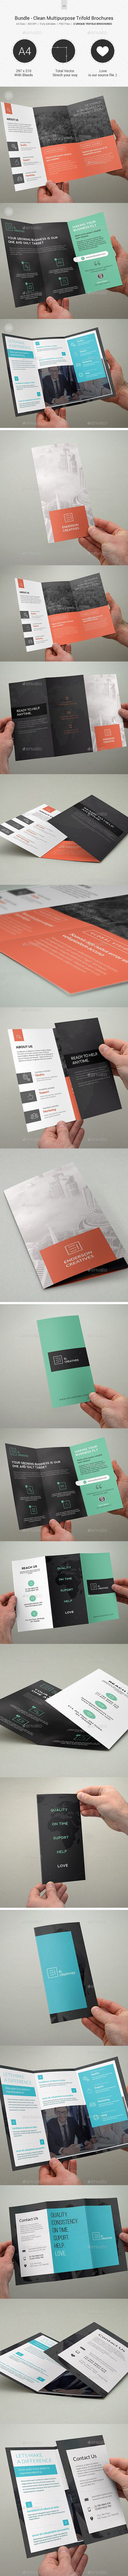 Bundle - Clean Multipurpose Trifold Brochures - 08 - Corporate Brochures